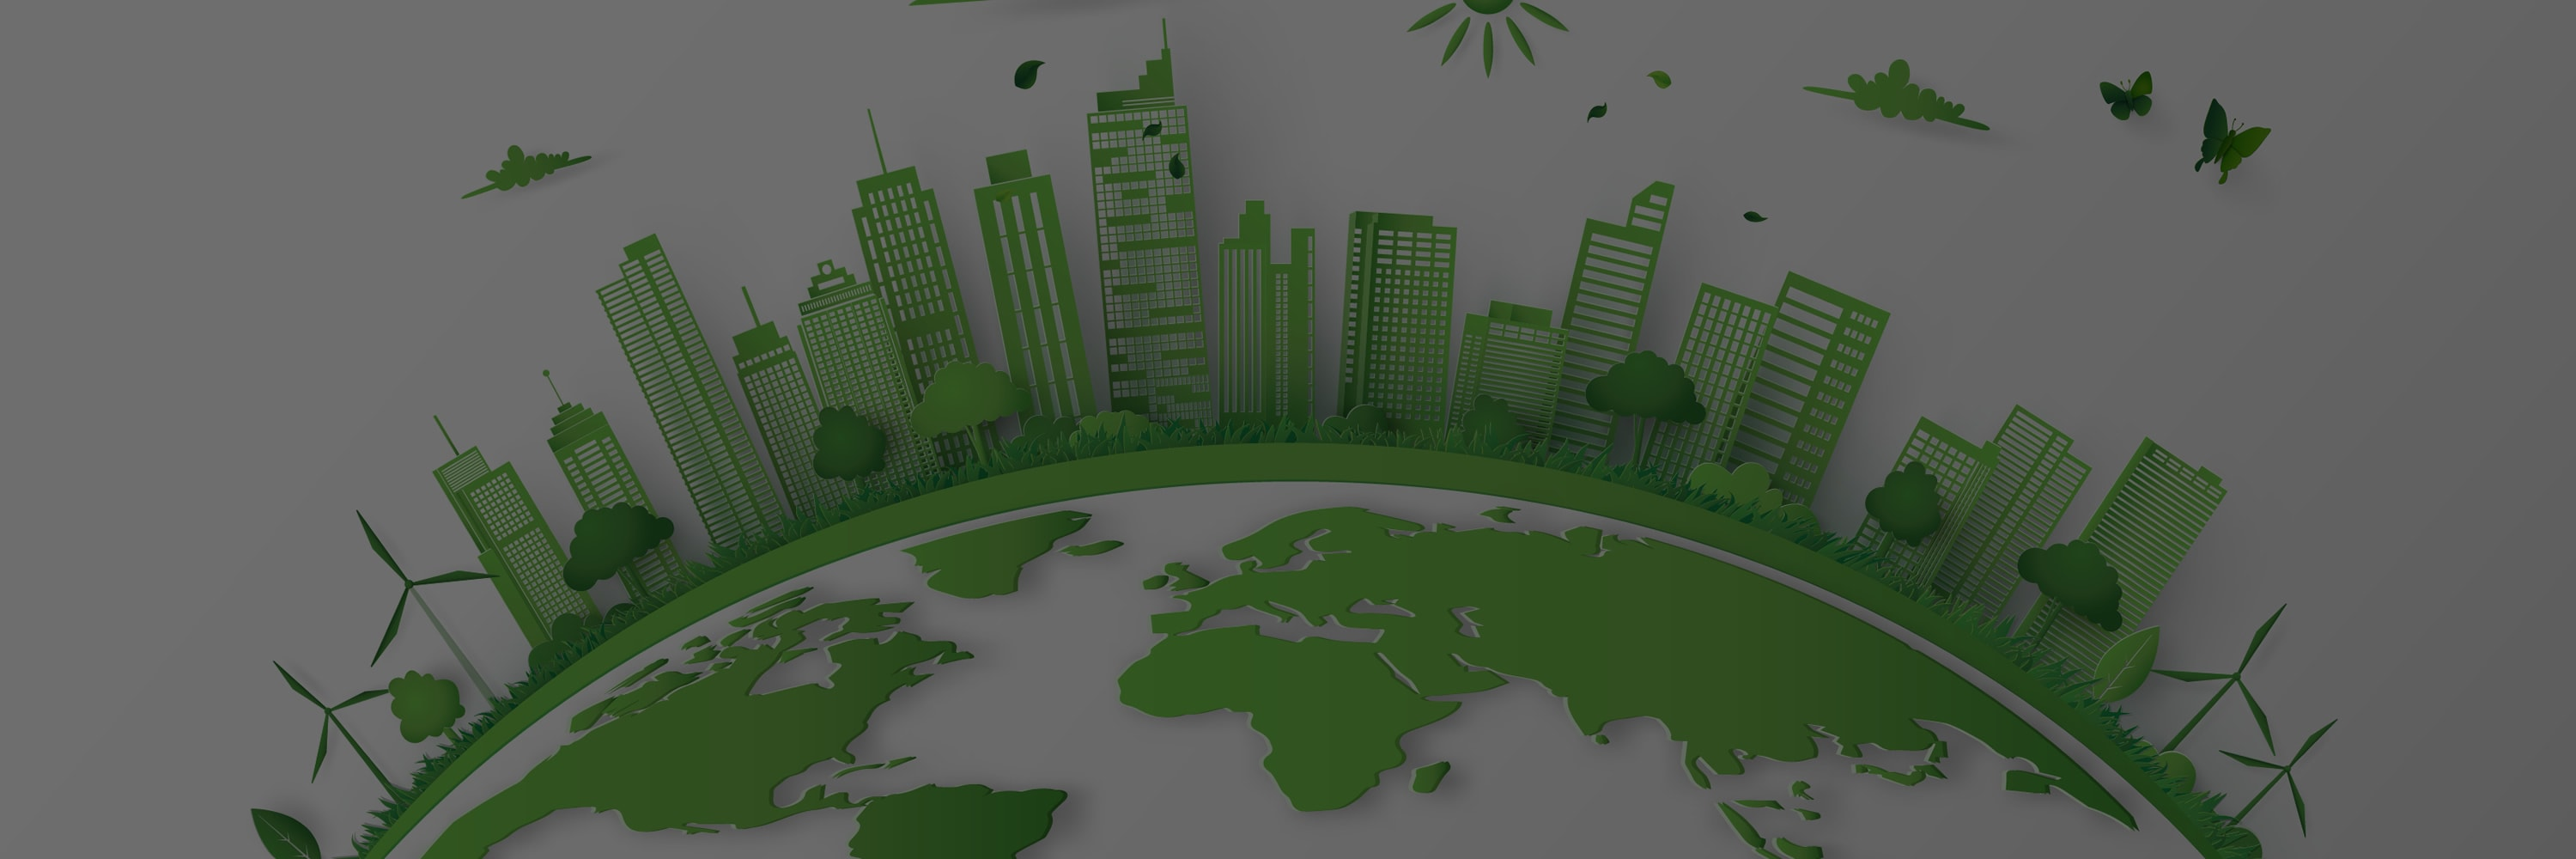 naem-webinar-2018-planning-for-a-sustainable-future-the-ideas-that-will-shape-ehs-and-sustainability-management-in-the-year-to-come-1800x600